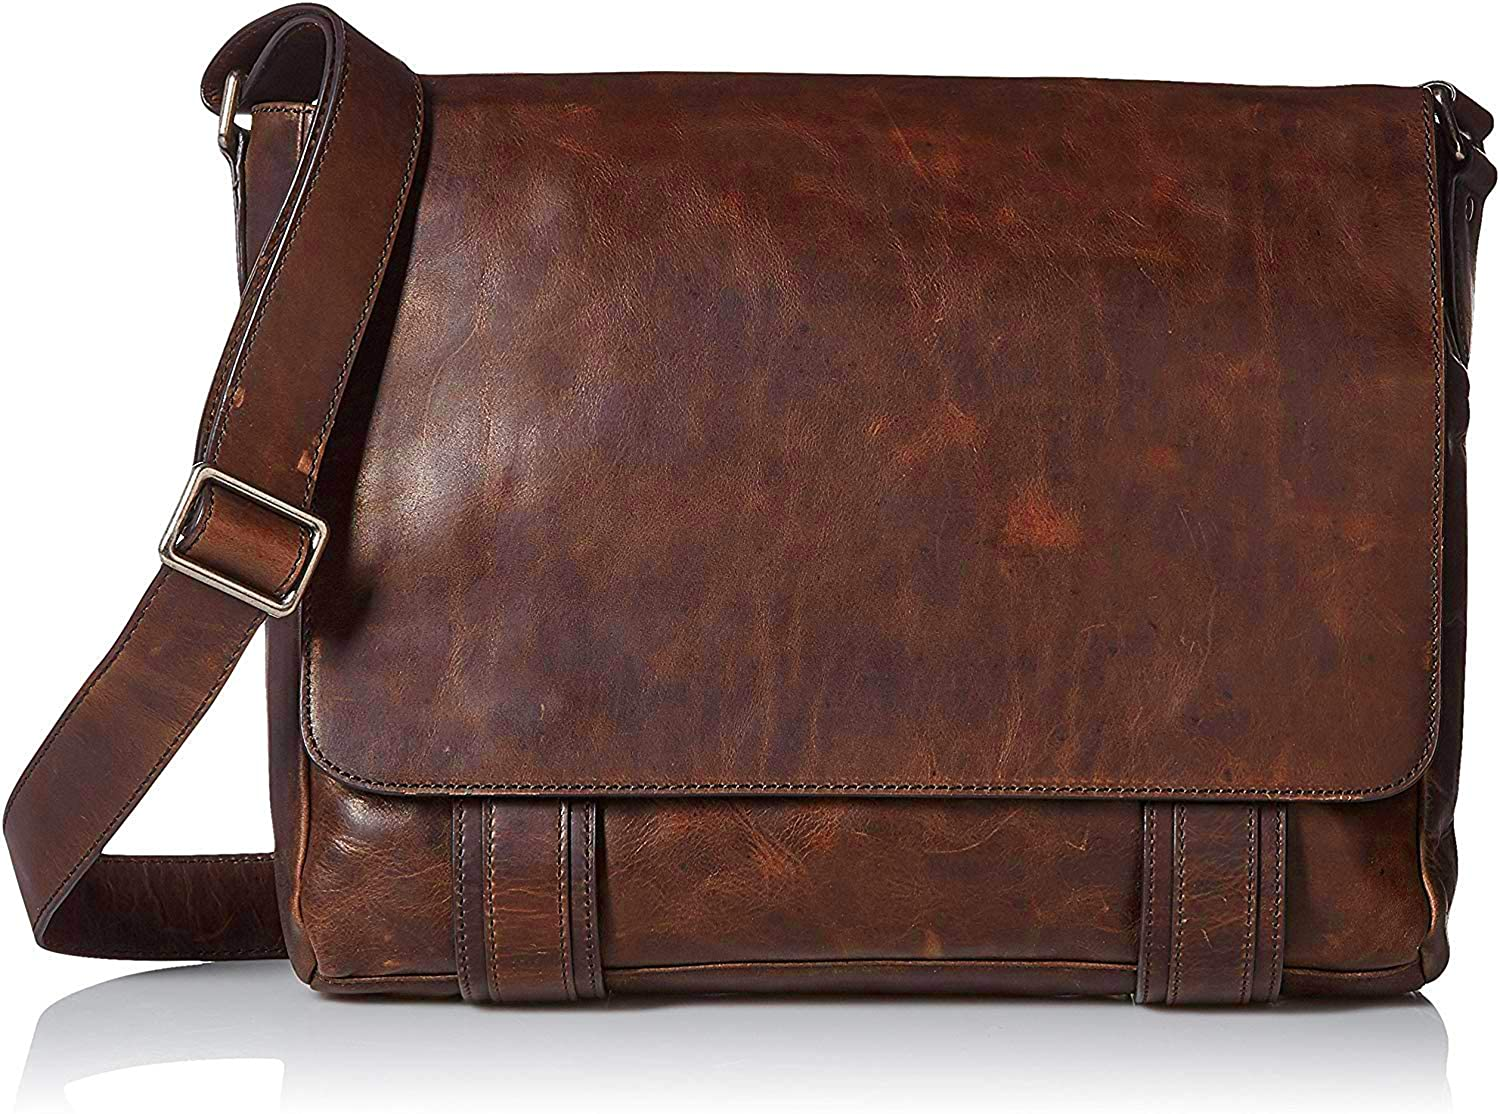 frye mens logan messenger bag, casual fashion, casual outfits, casual clothes, casual wear